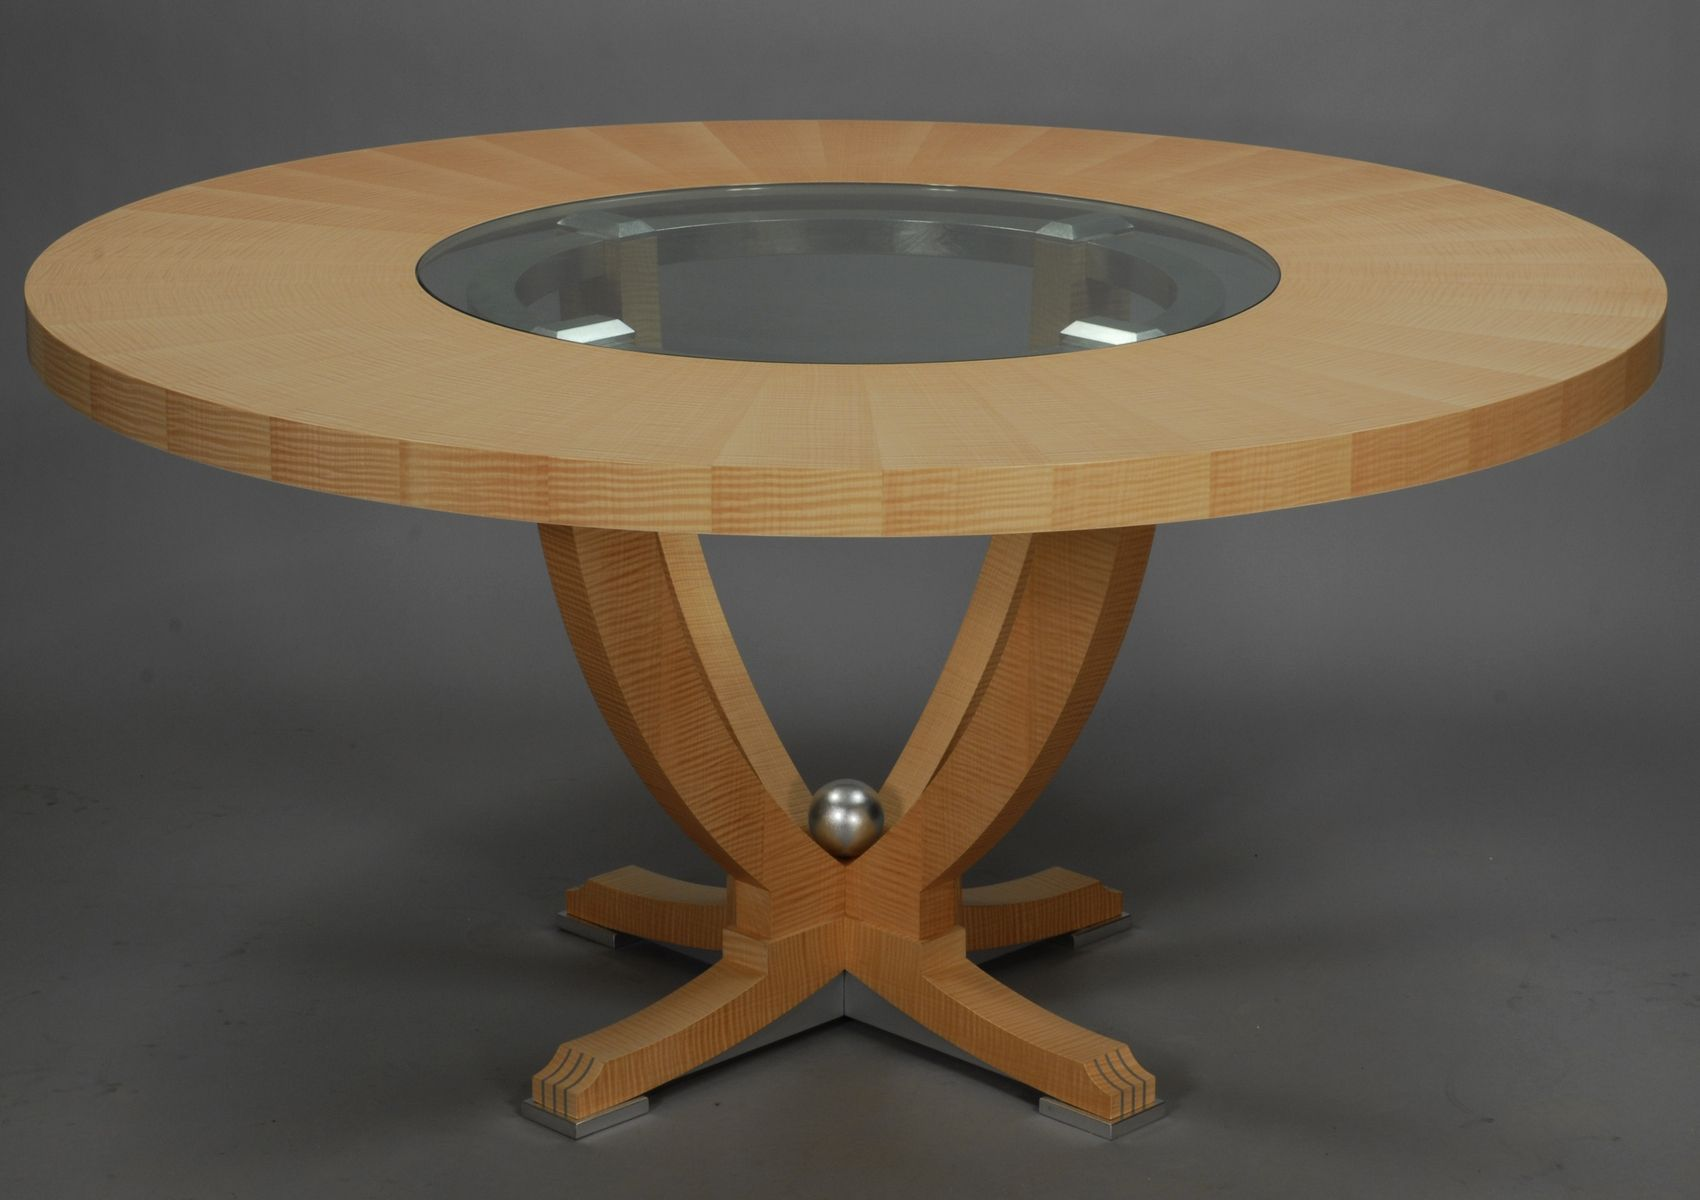 Urn Dining Table with Center Glass Insert | Table, Dining ...